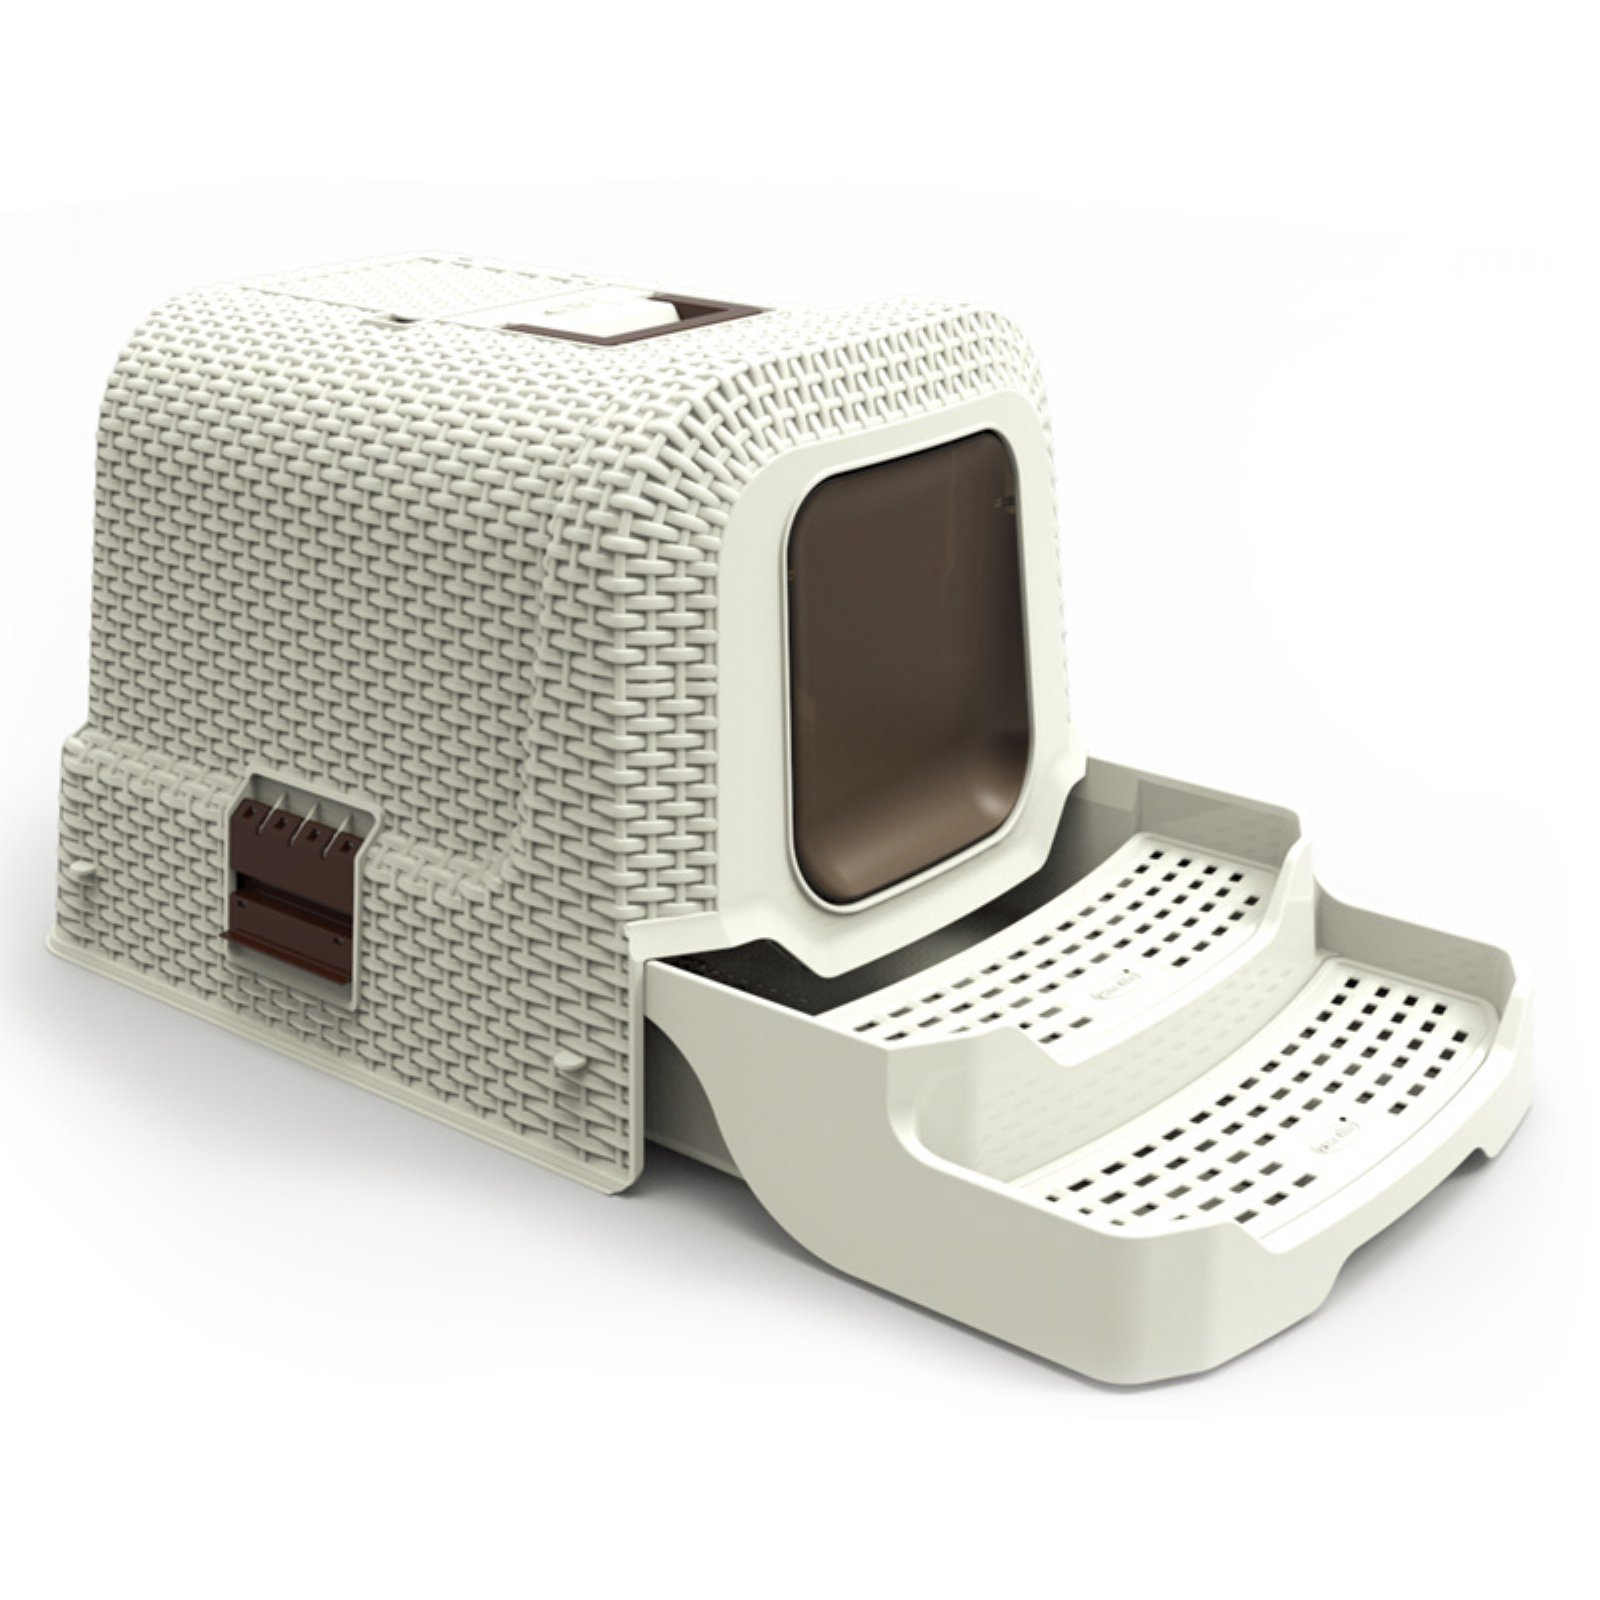 Iconic Pet Kittyklean Litter Box With Rattan Finish Walmart Com